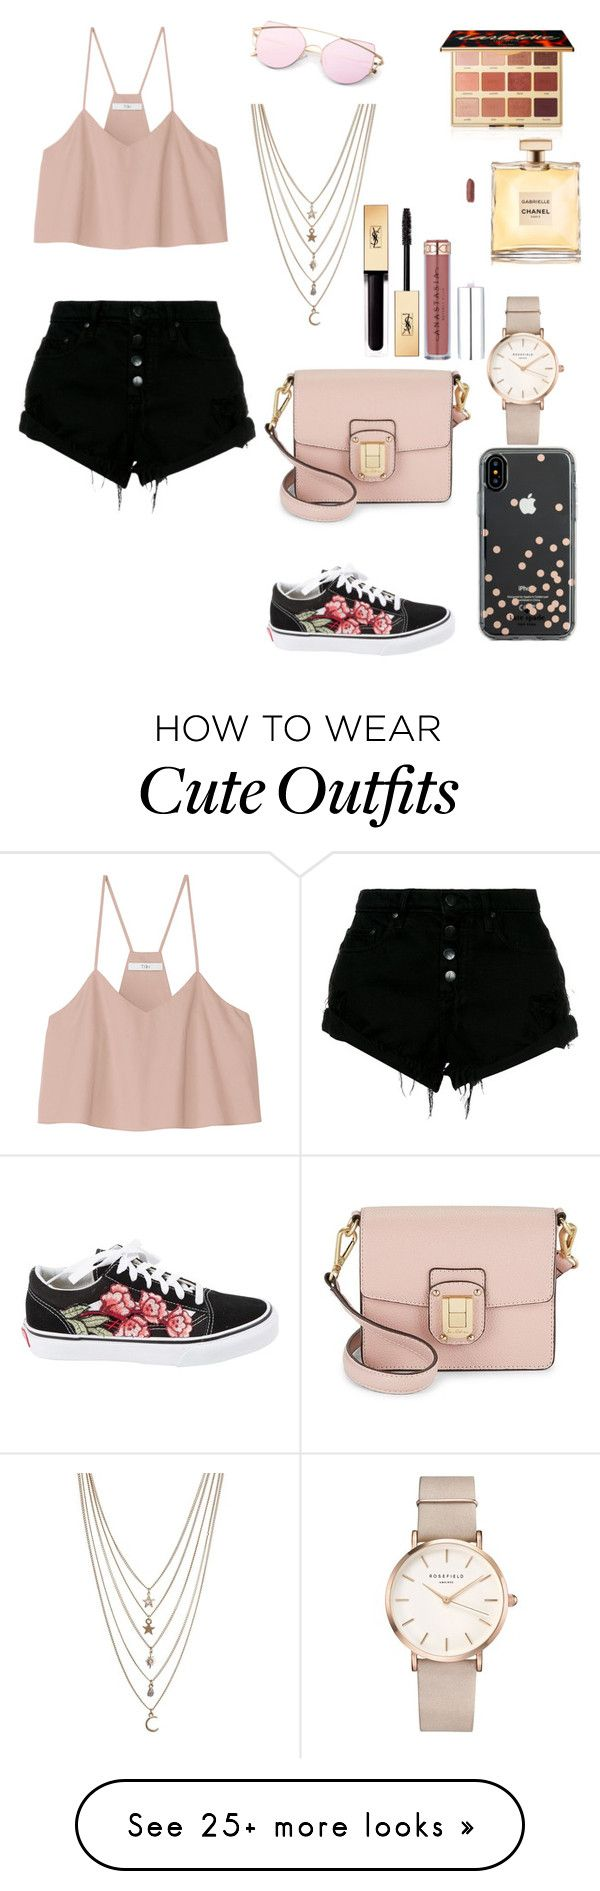 """Cute Outfit"" by anabia1997 on Polyvore featuring TIBI, Nobody Denim, Vans, Sam Edelman, Kate Spade, Ettika, ROSEFIELD, tarte and Yves Saint Laurent"